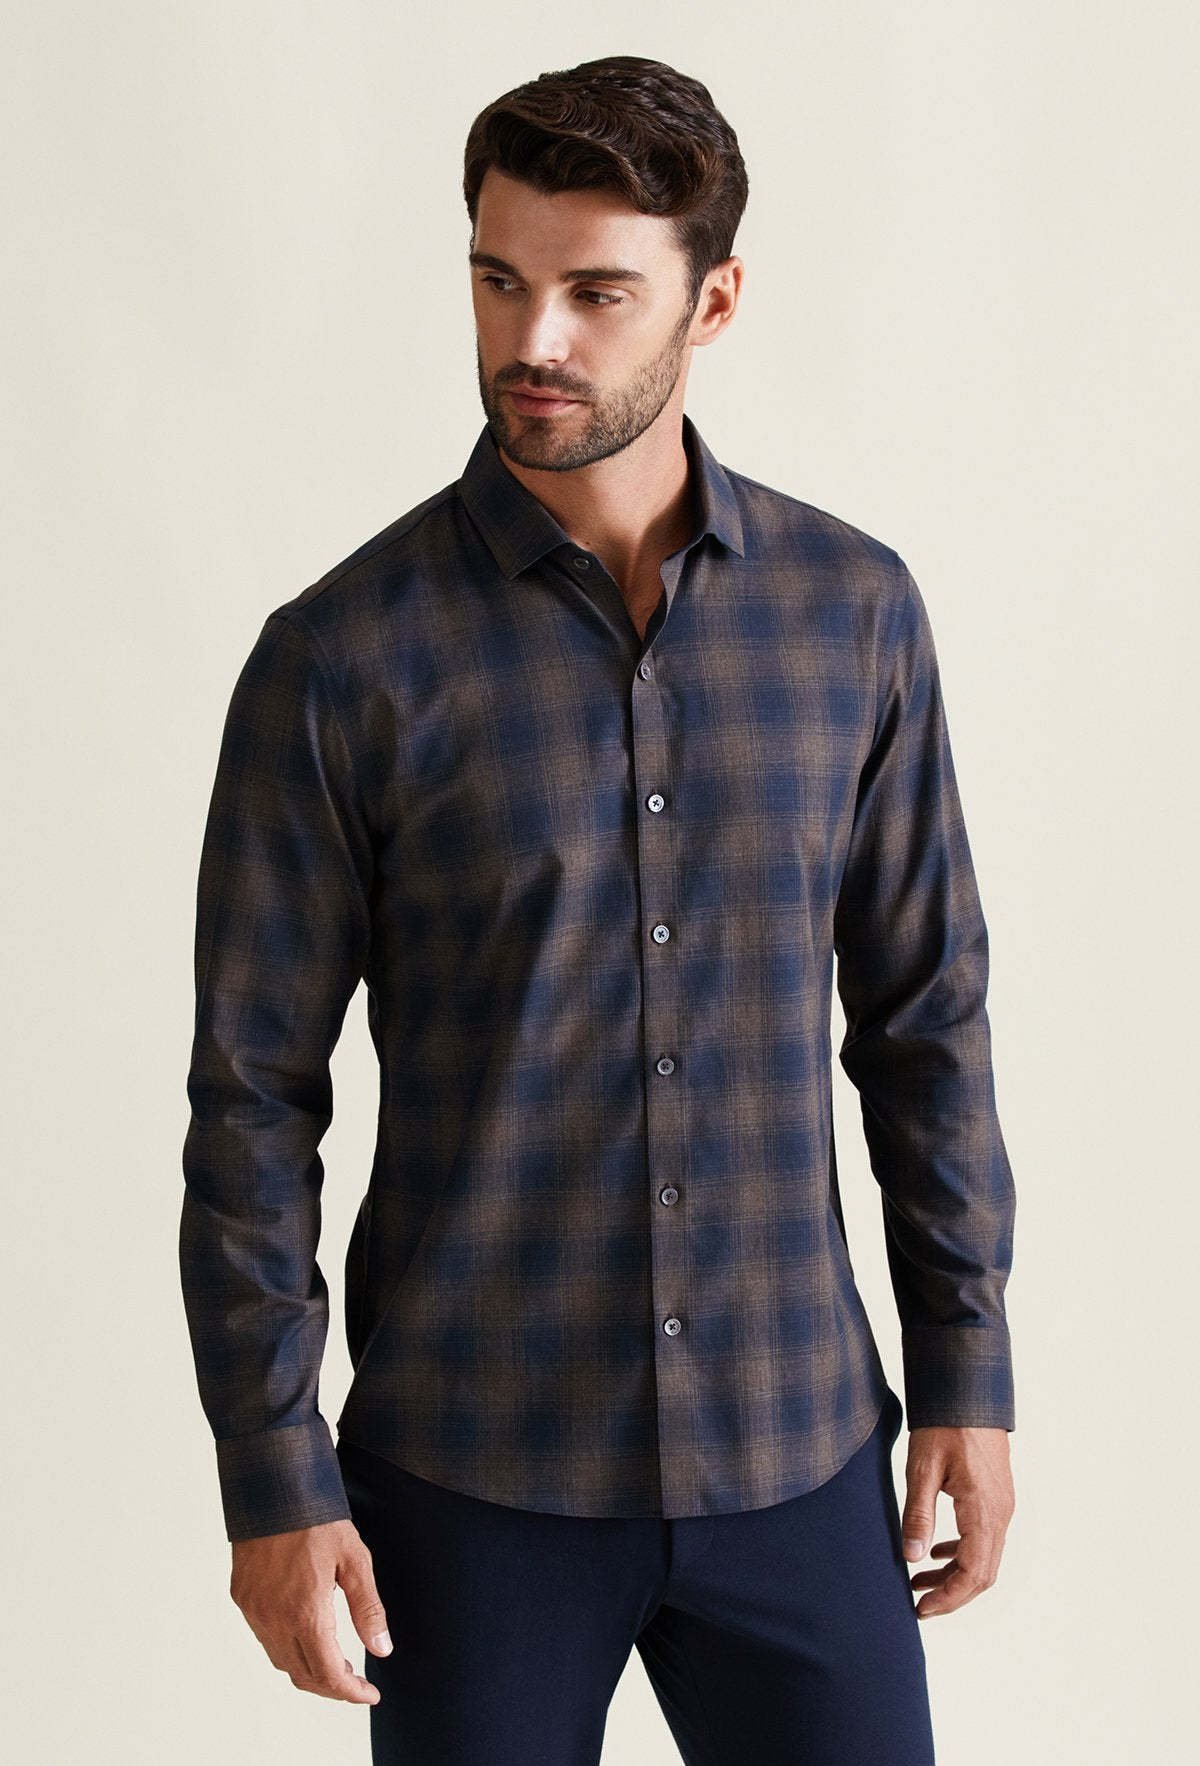 men's long sleeve blue and brown plaid shirt cotton cashmere